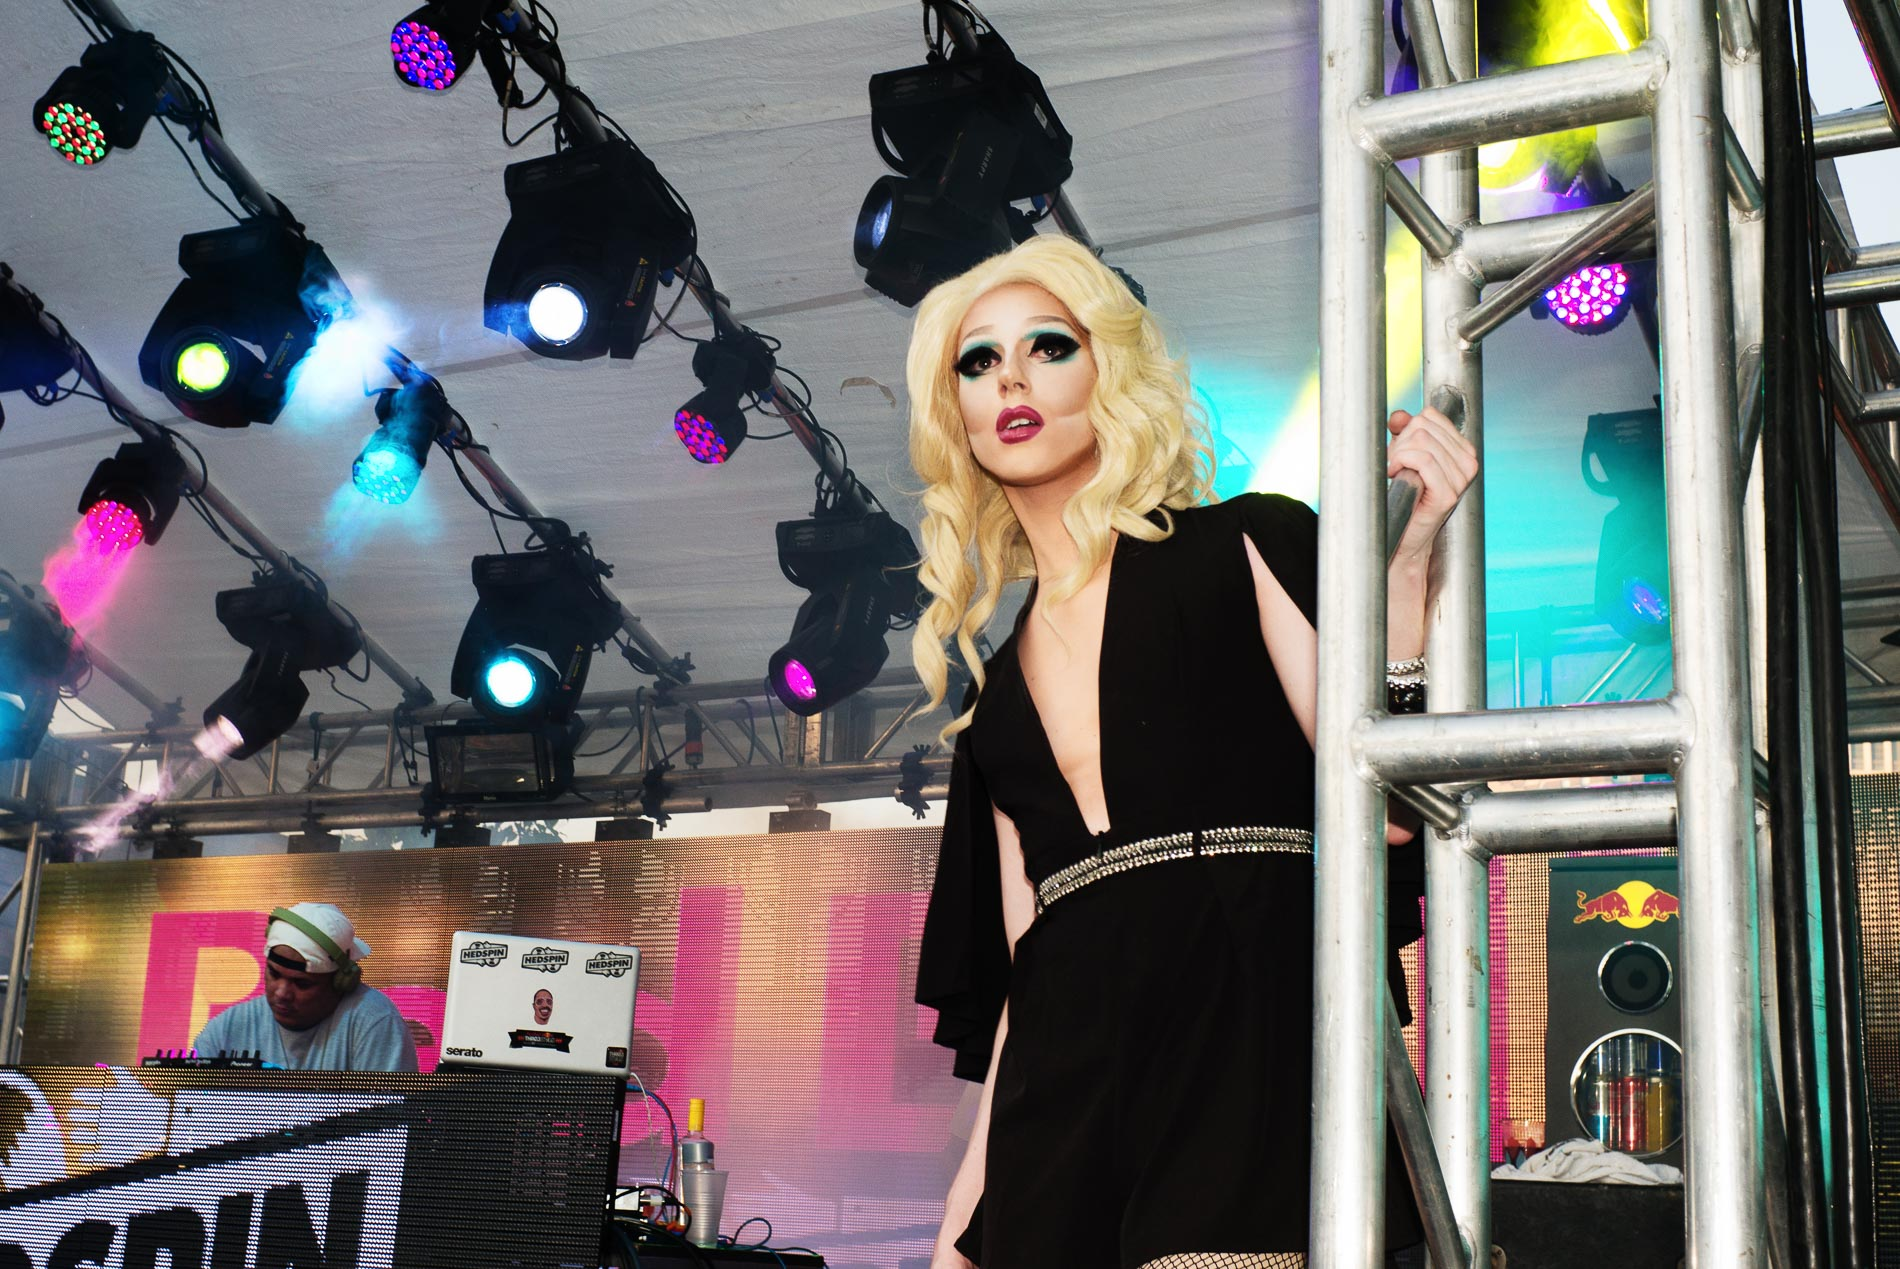 Drag performer Trixie Mattell on the Red Bull Stage.